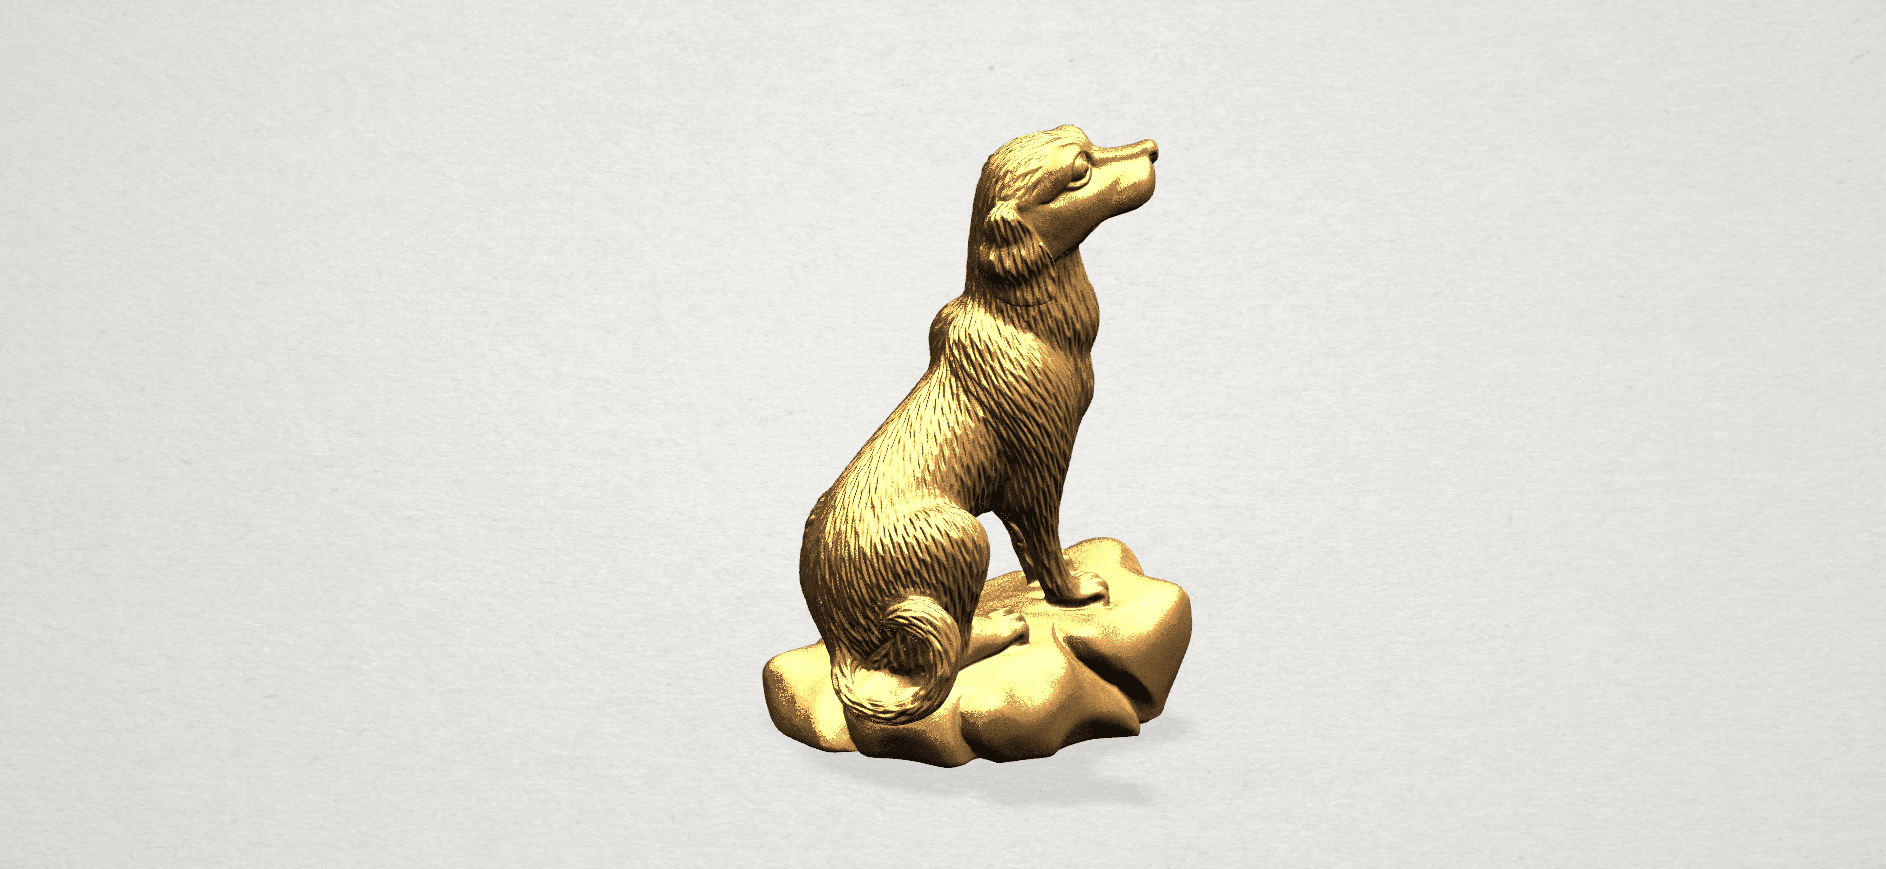 ZChinese Horoscope11-B03.png Download free STL file Chinese Horoscope 11 Dog • 3D print design, GeorgesNikkei